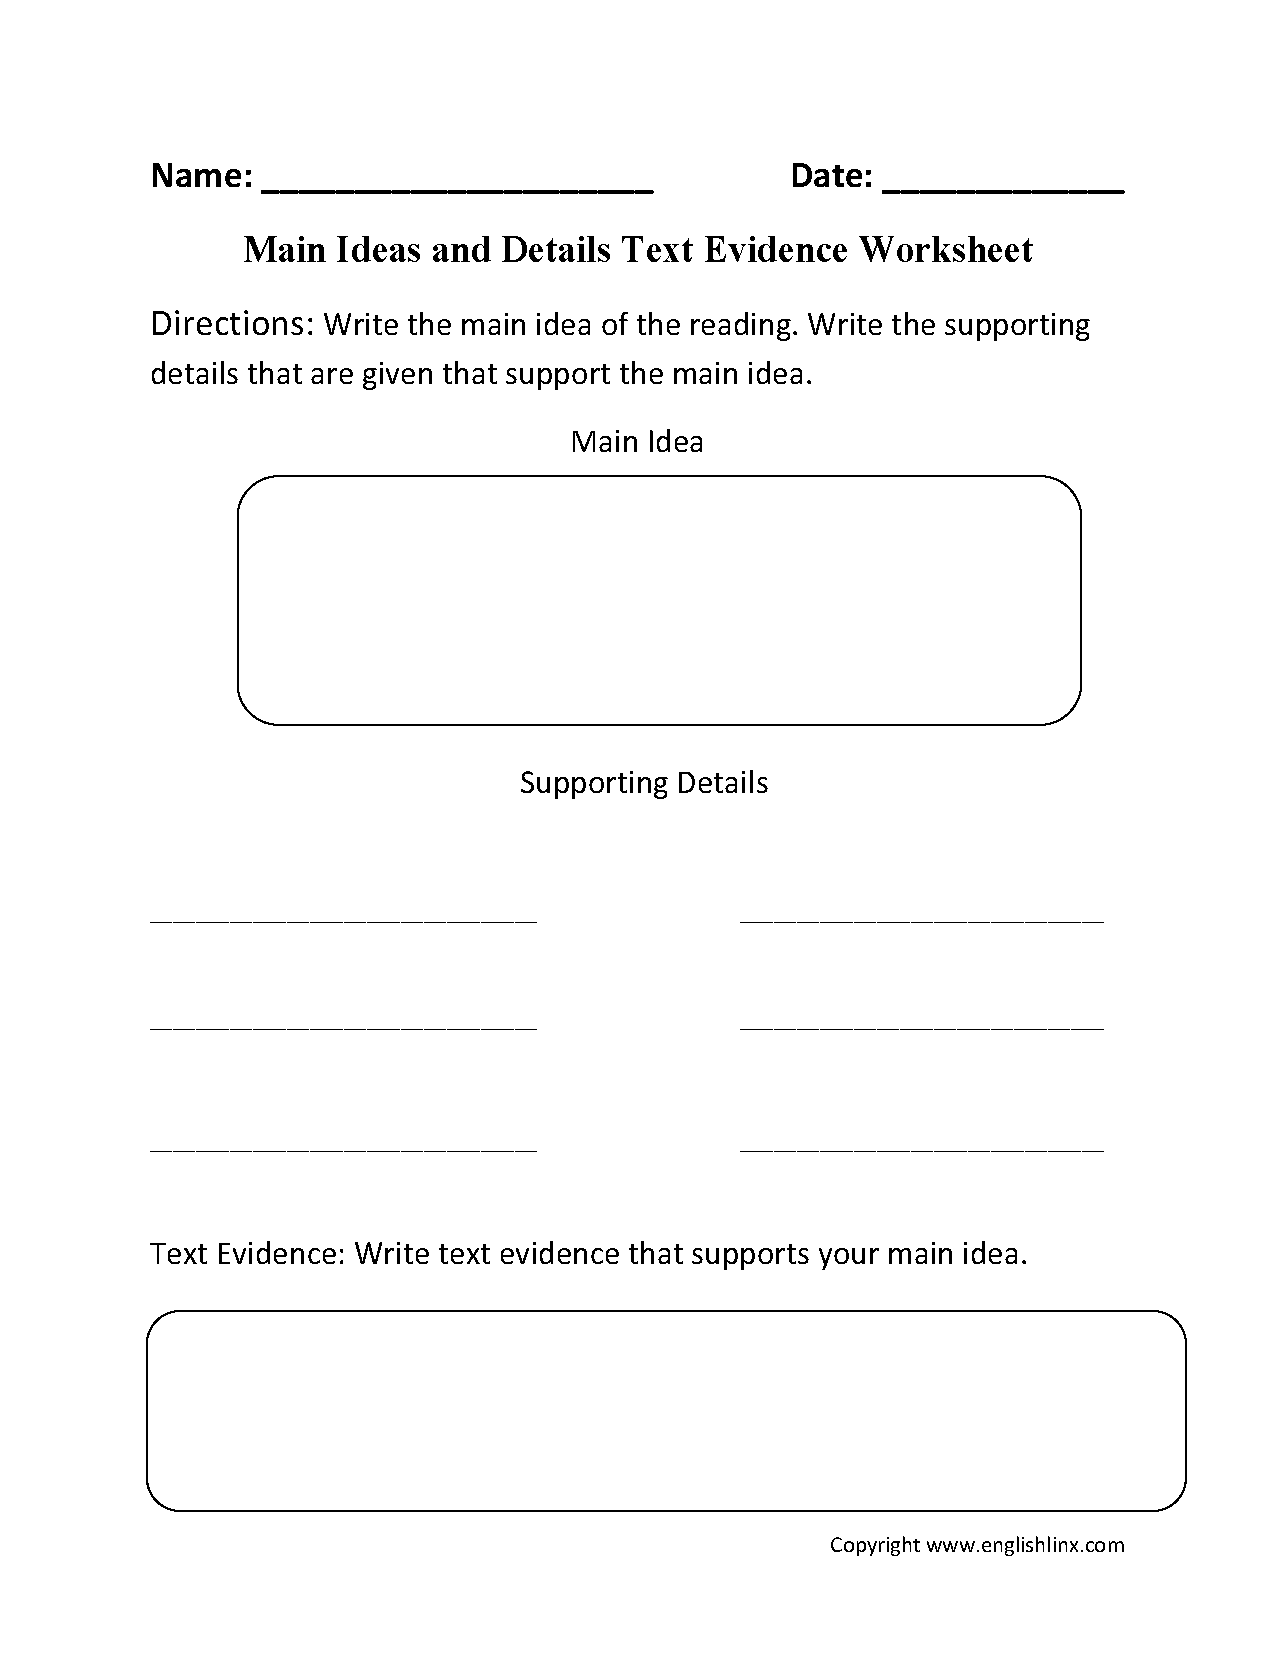 worksheet 4th Grade Main Idea Worksheets reading worksheets main idea text evidence worksheet